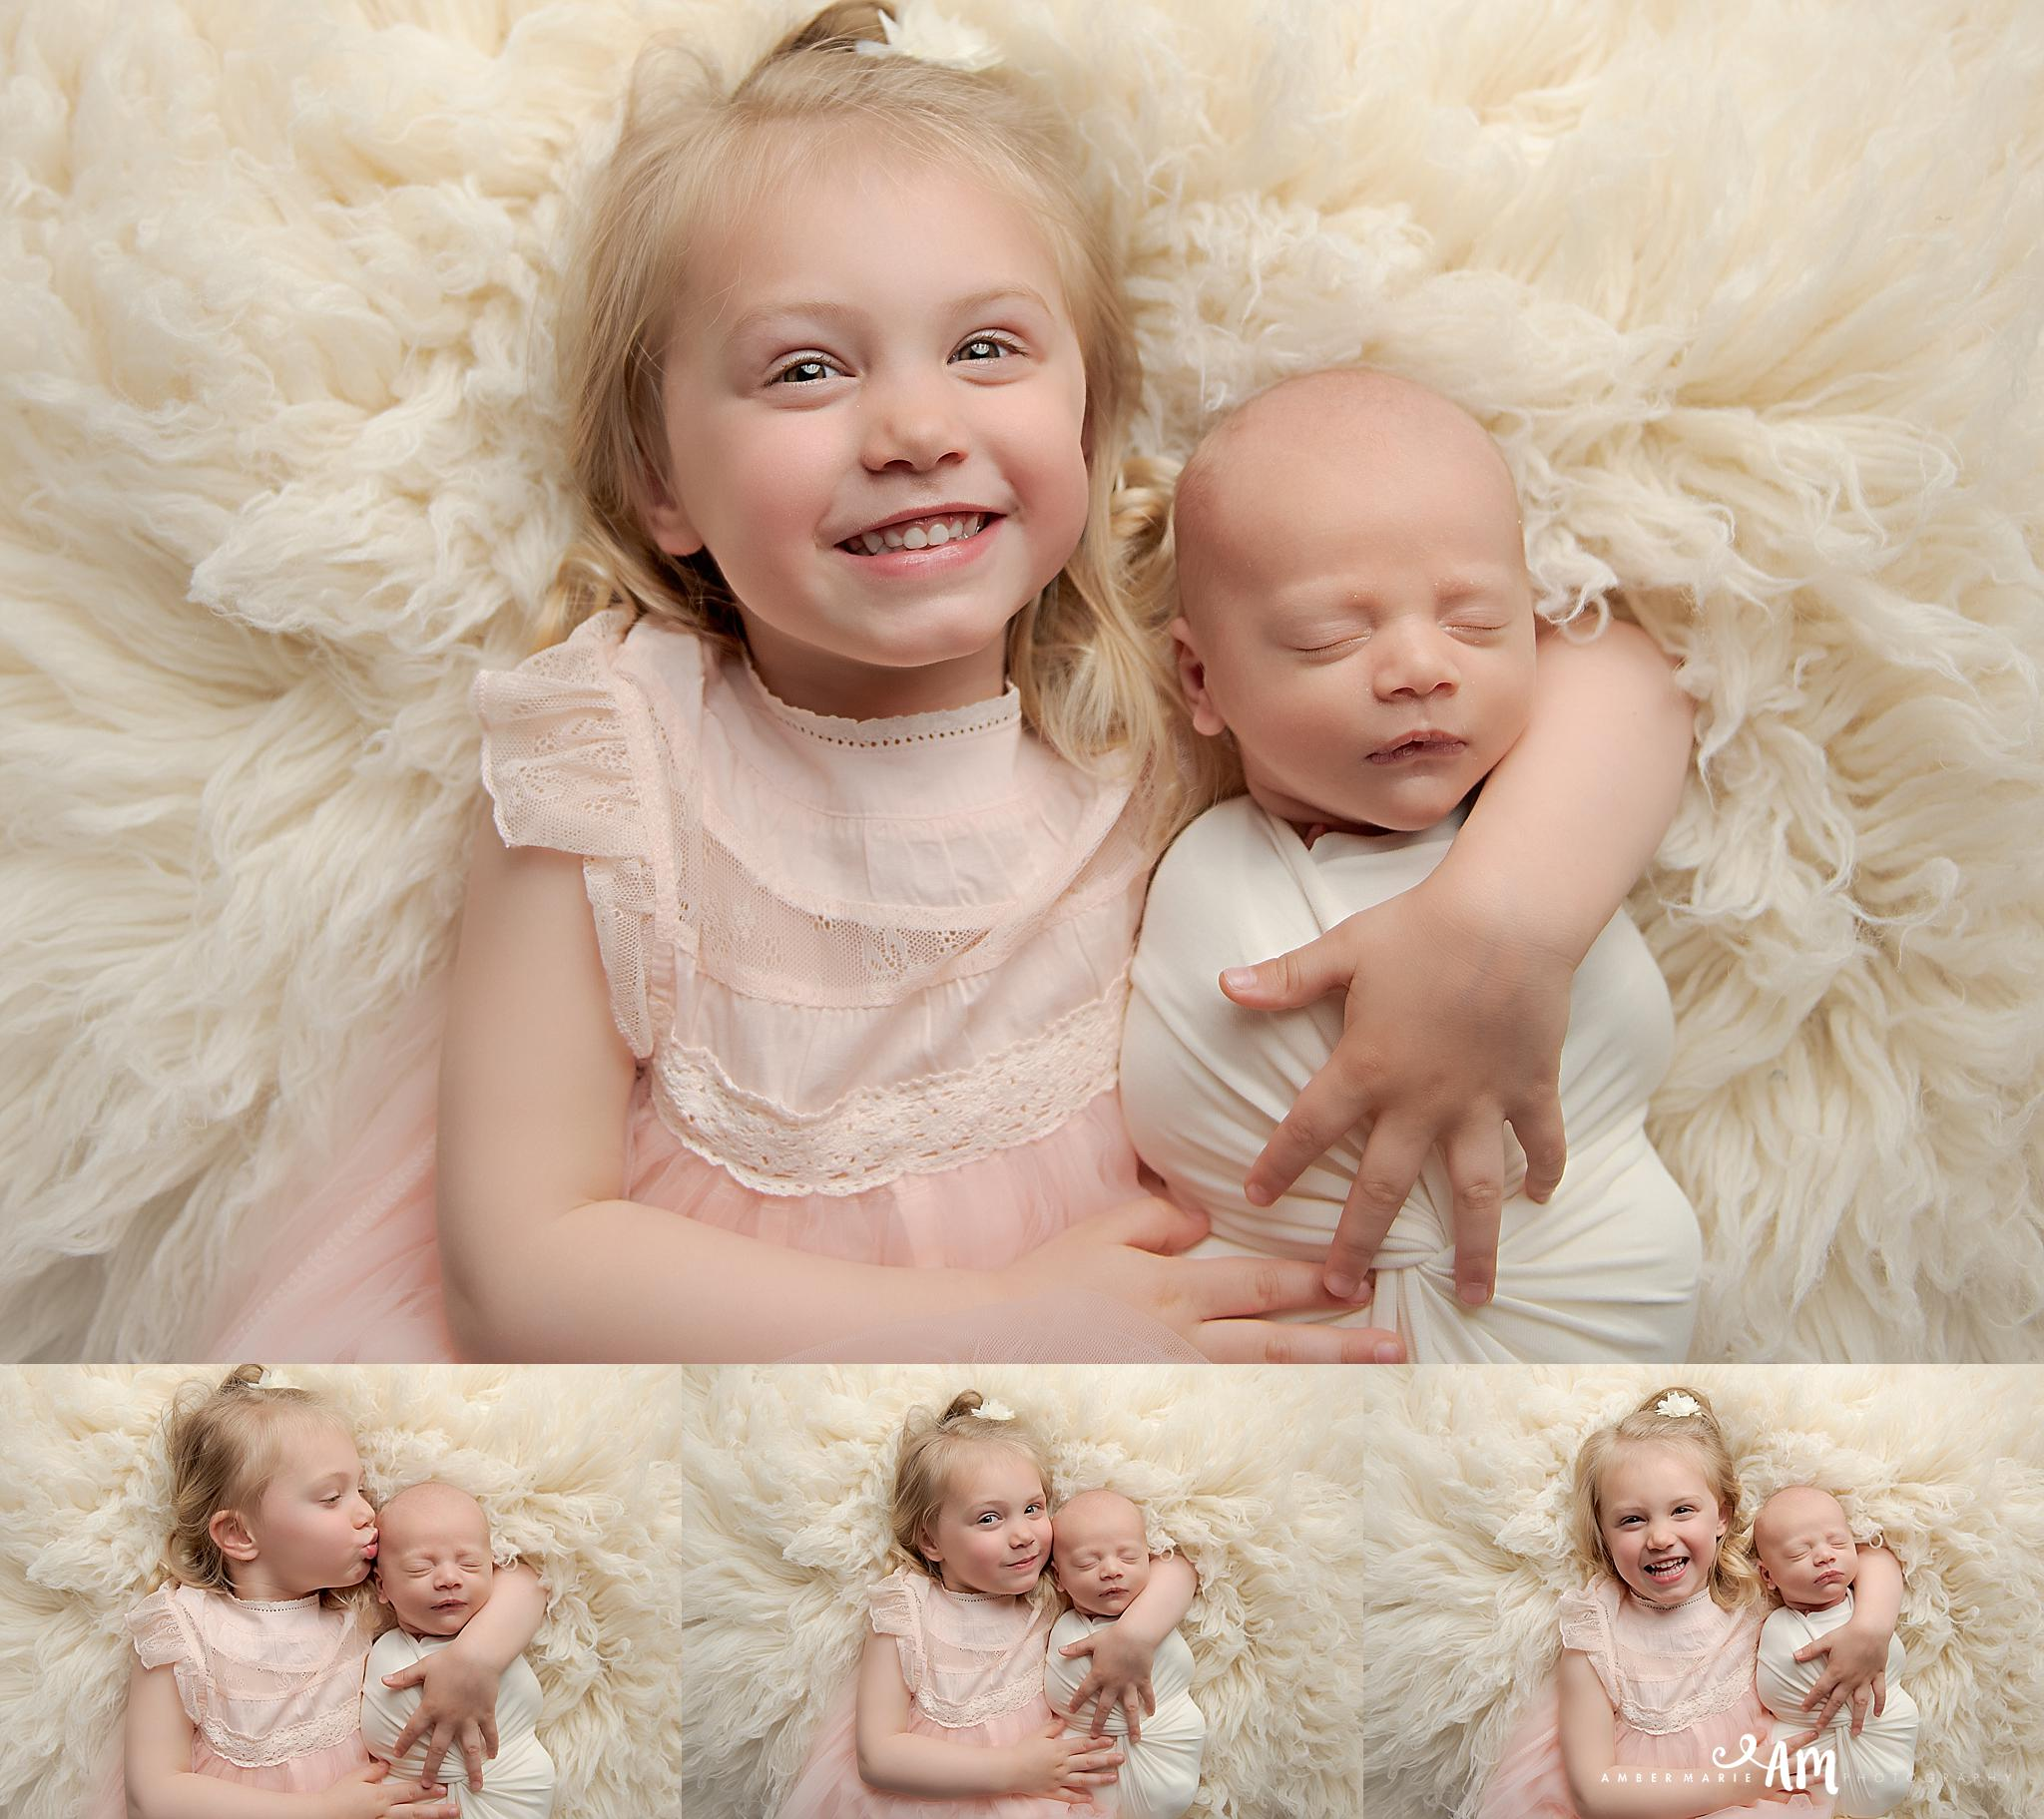 Northfield_Newborn_Photographer03.jpg